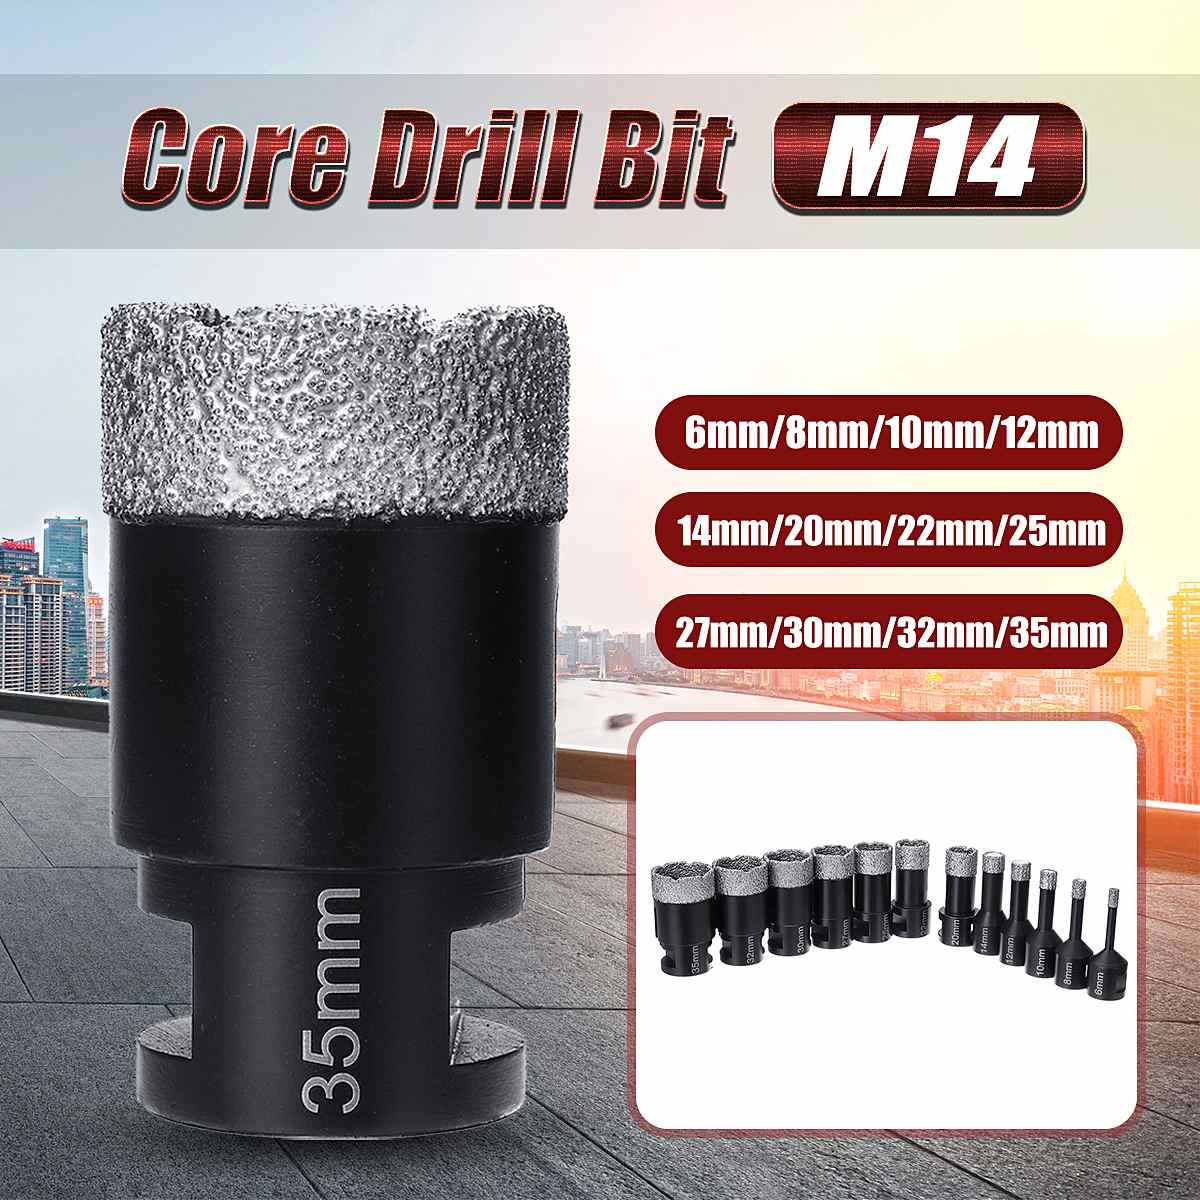 6-35mm Professional Diamond Drilling Bits Hole Saw Tile Drill Core Bits Porcelain Marble M14 Thread Dia For Angle Grinder